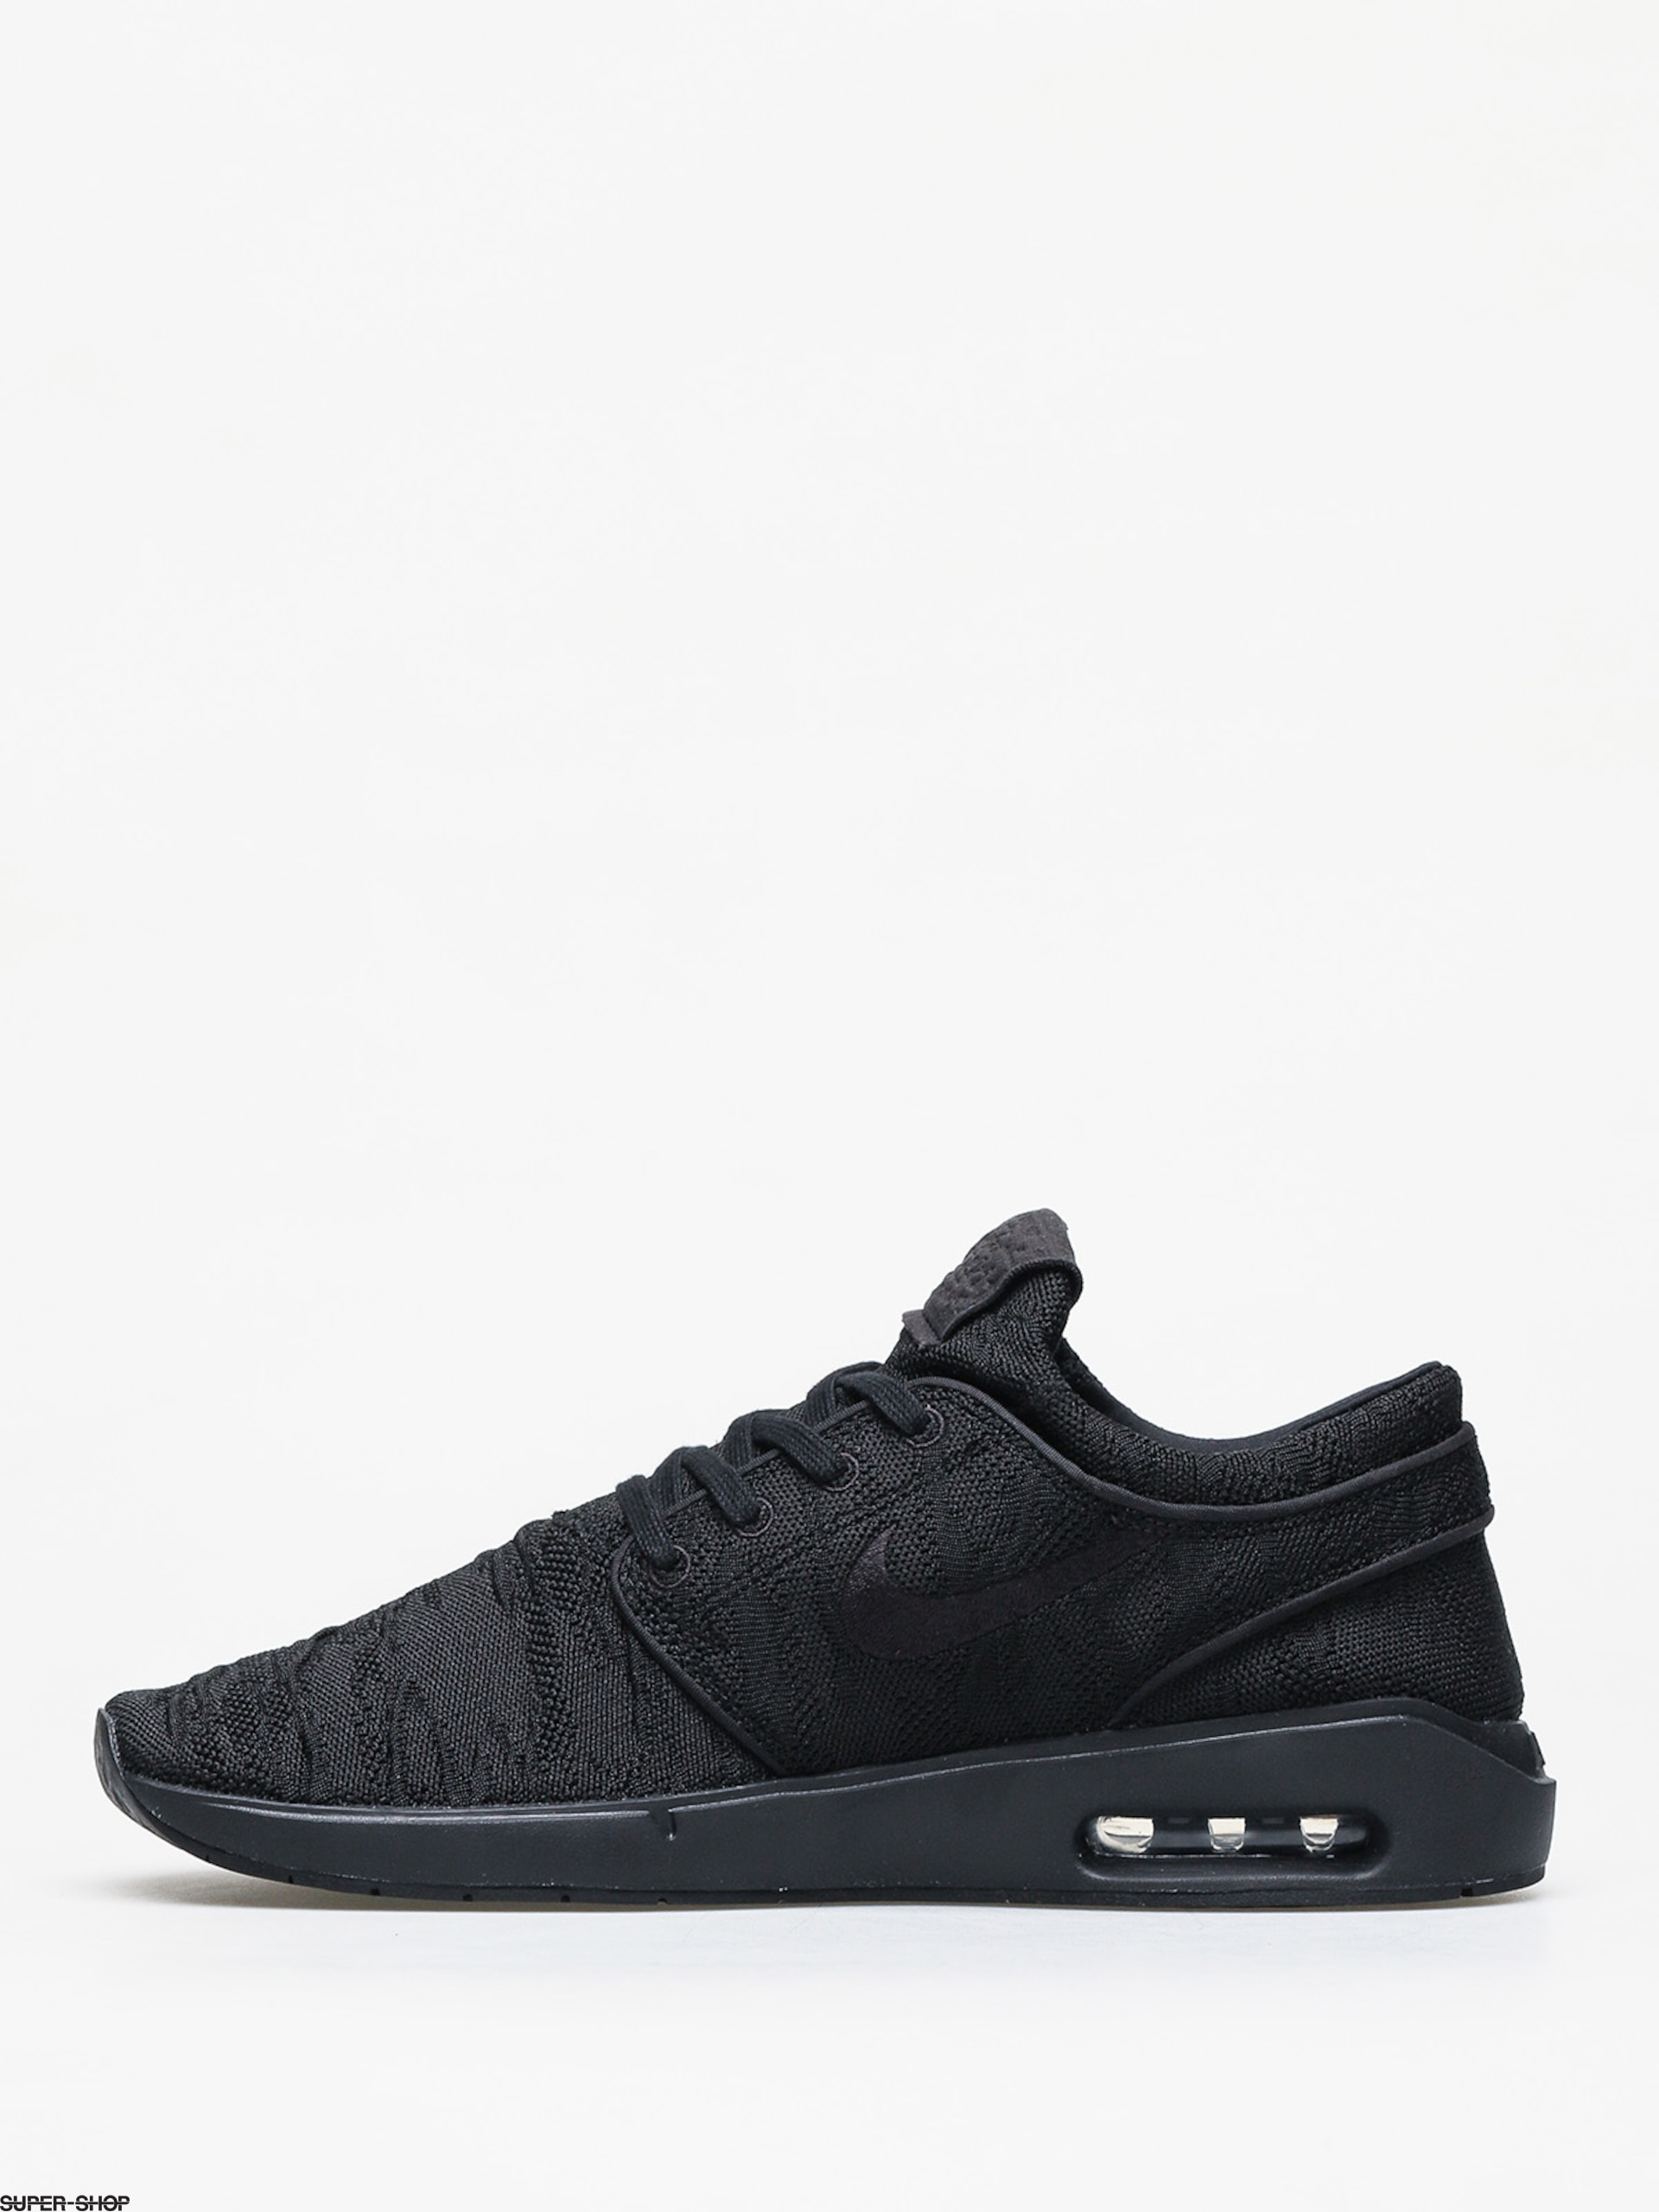 Nike SB Air Max Janoski 2 Shoes BlackBlack Black Black